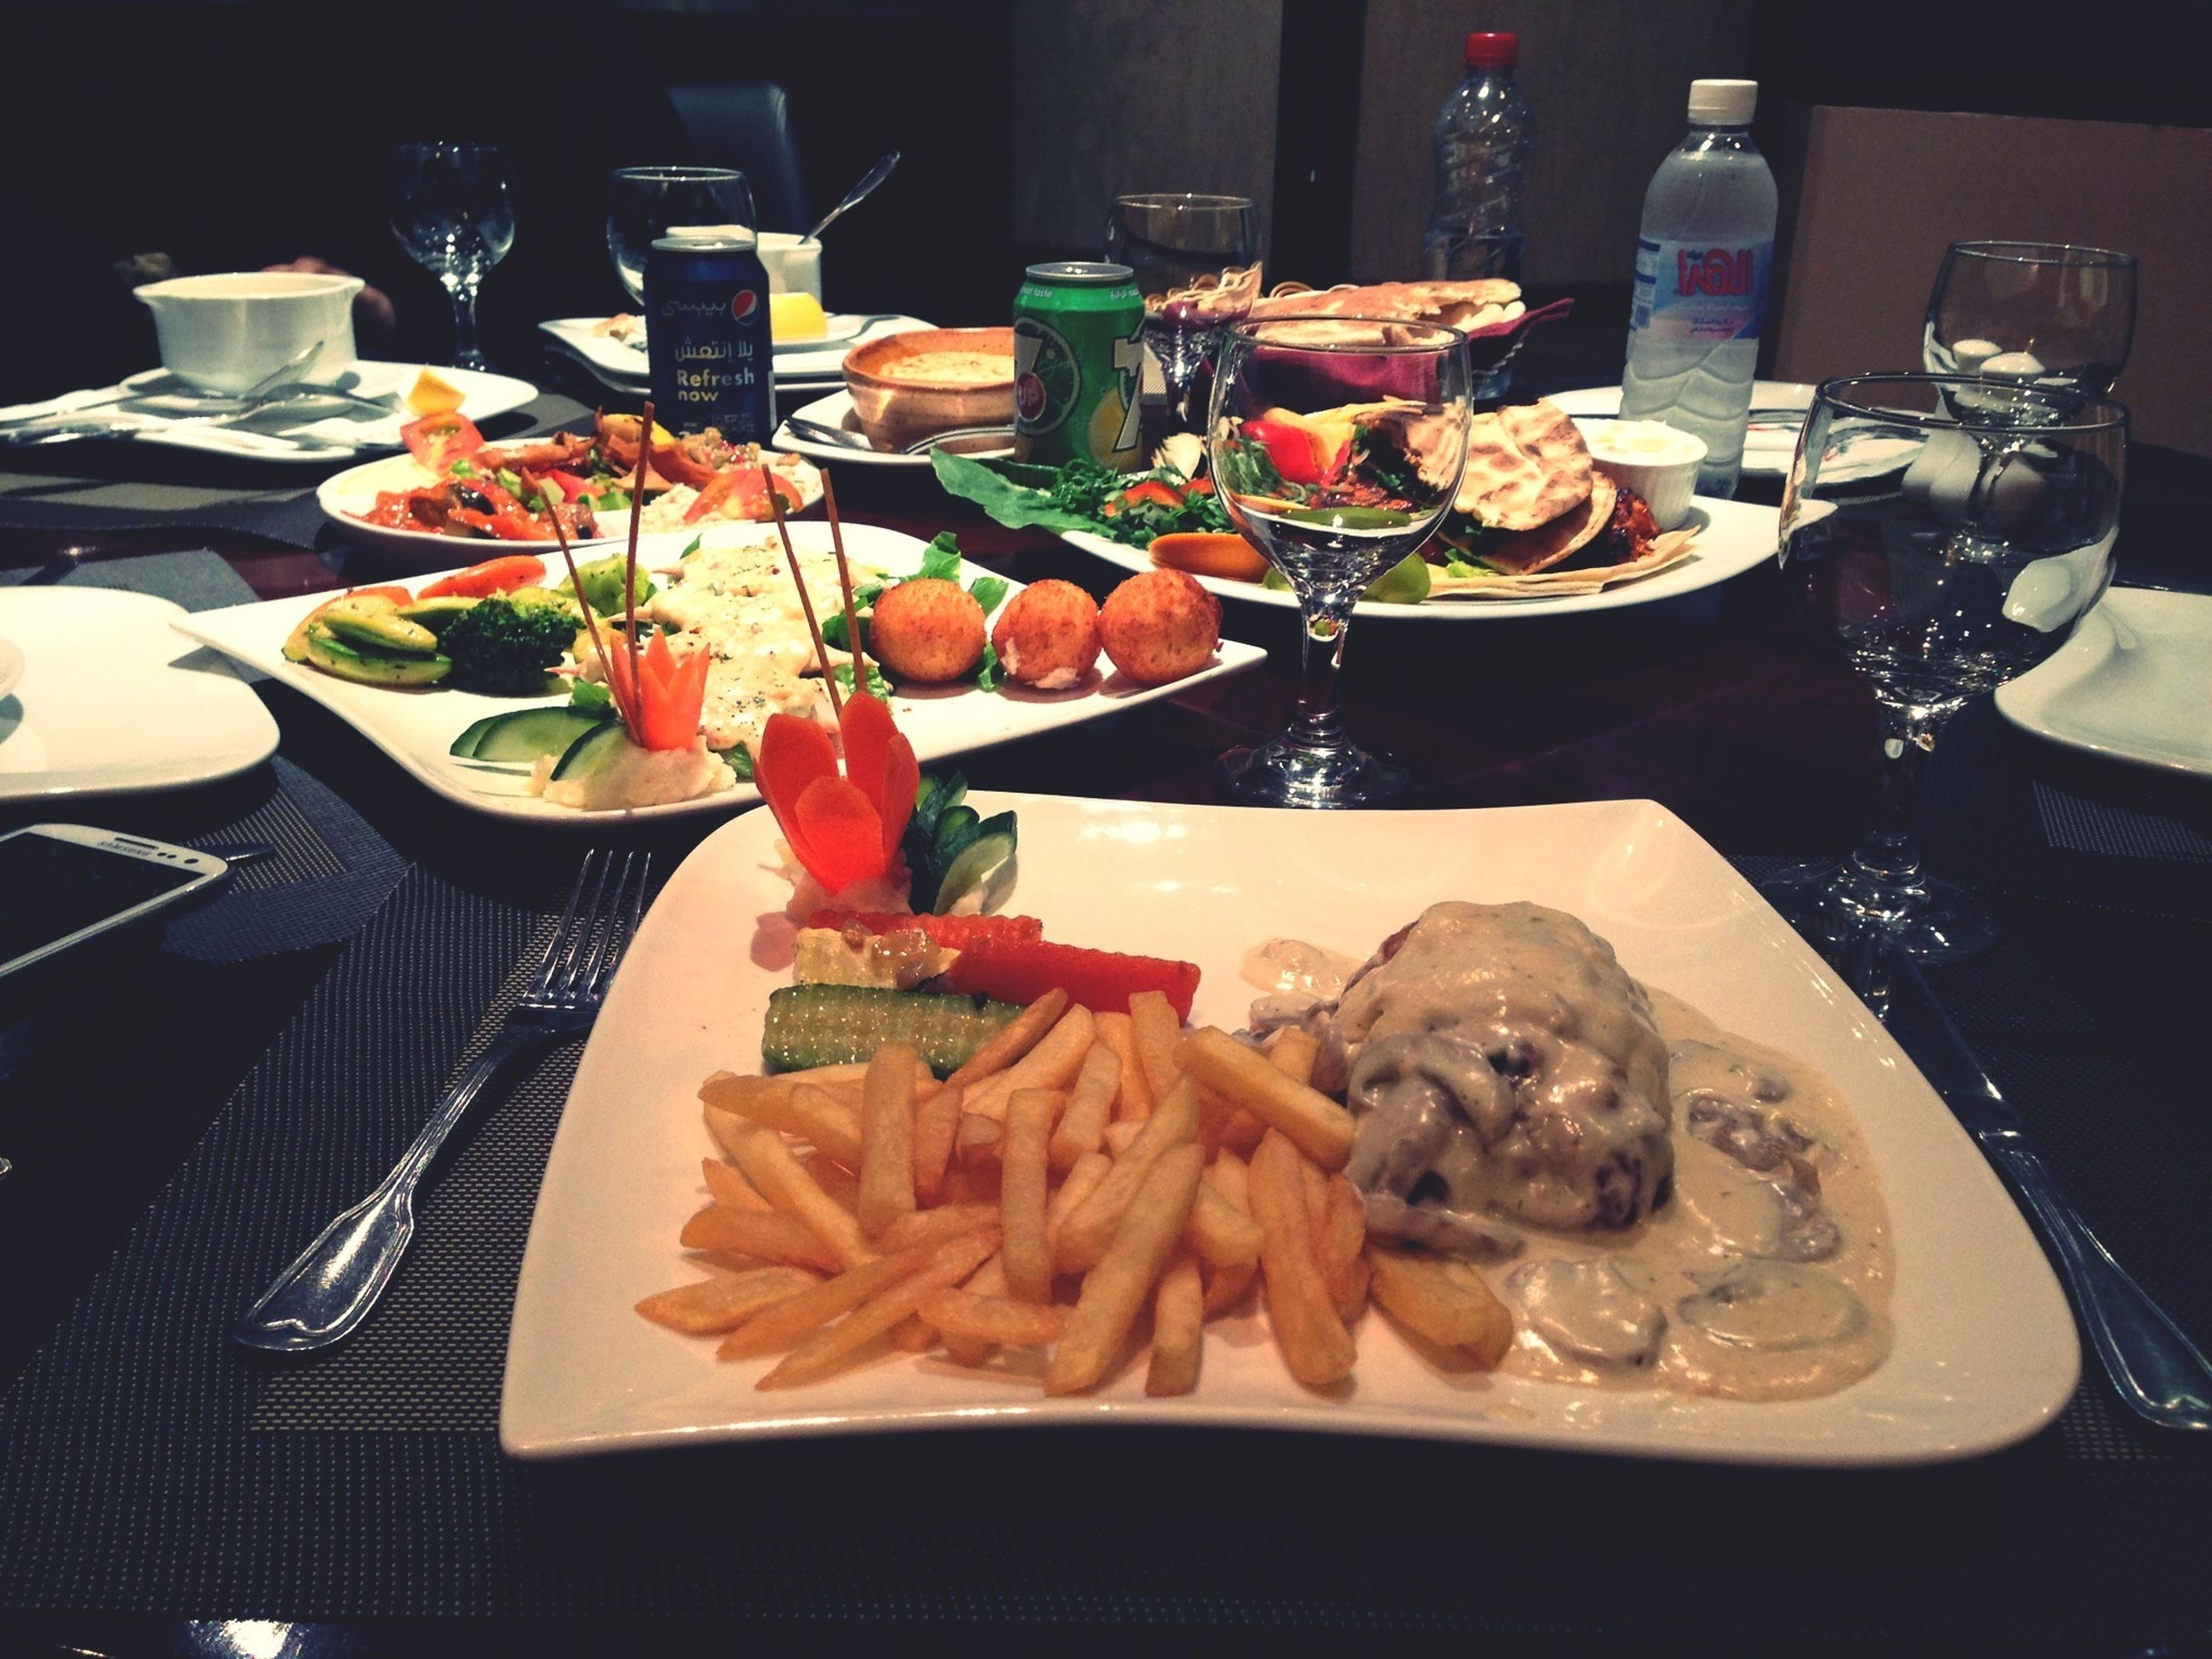 indoors, food and drink, food, freshness, table, still life, plate, healthy eating, ready-to-eat, high angle view, fork, meal, vegetable, variation, restaurant, meat, close-up, serving size, salad, no people